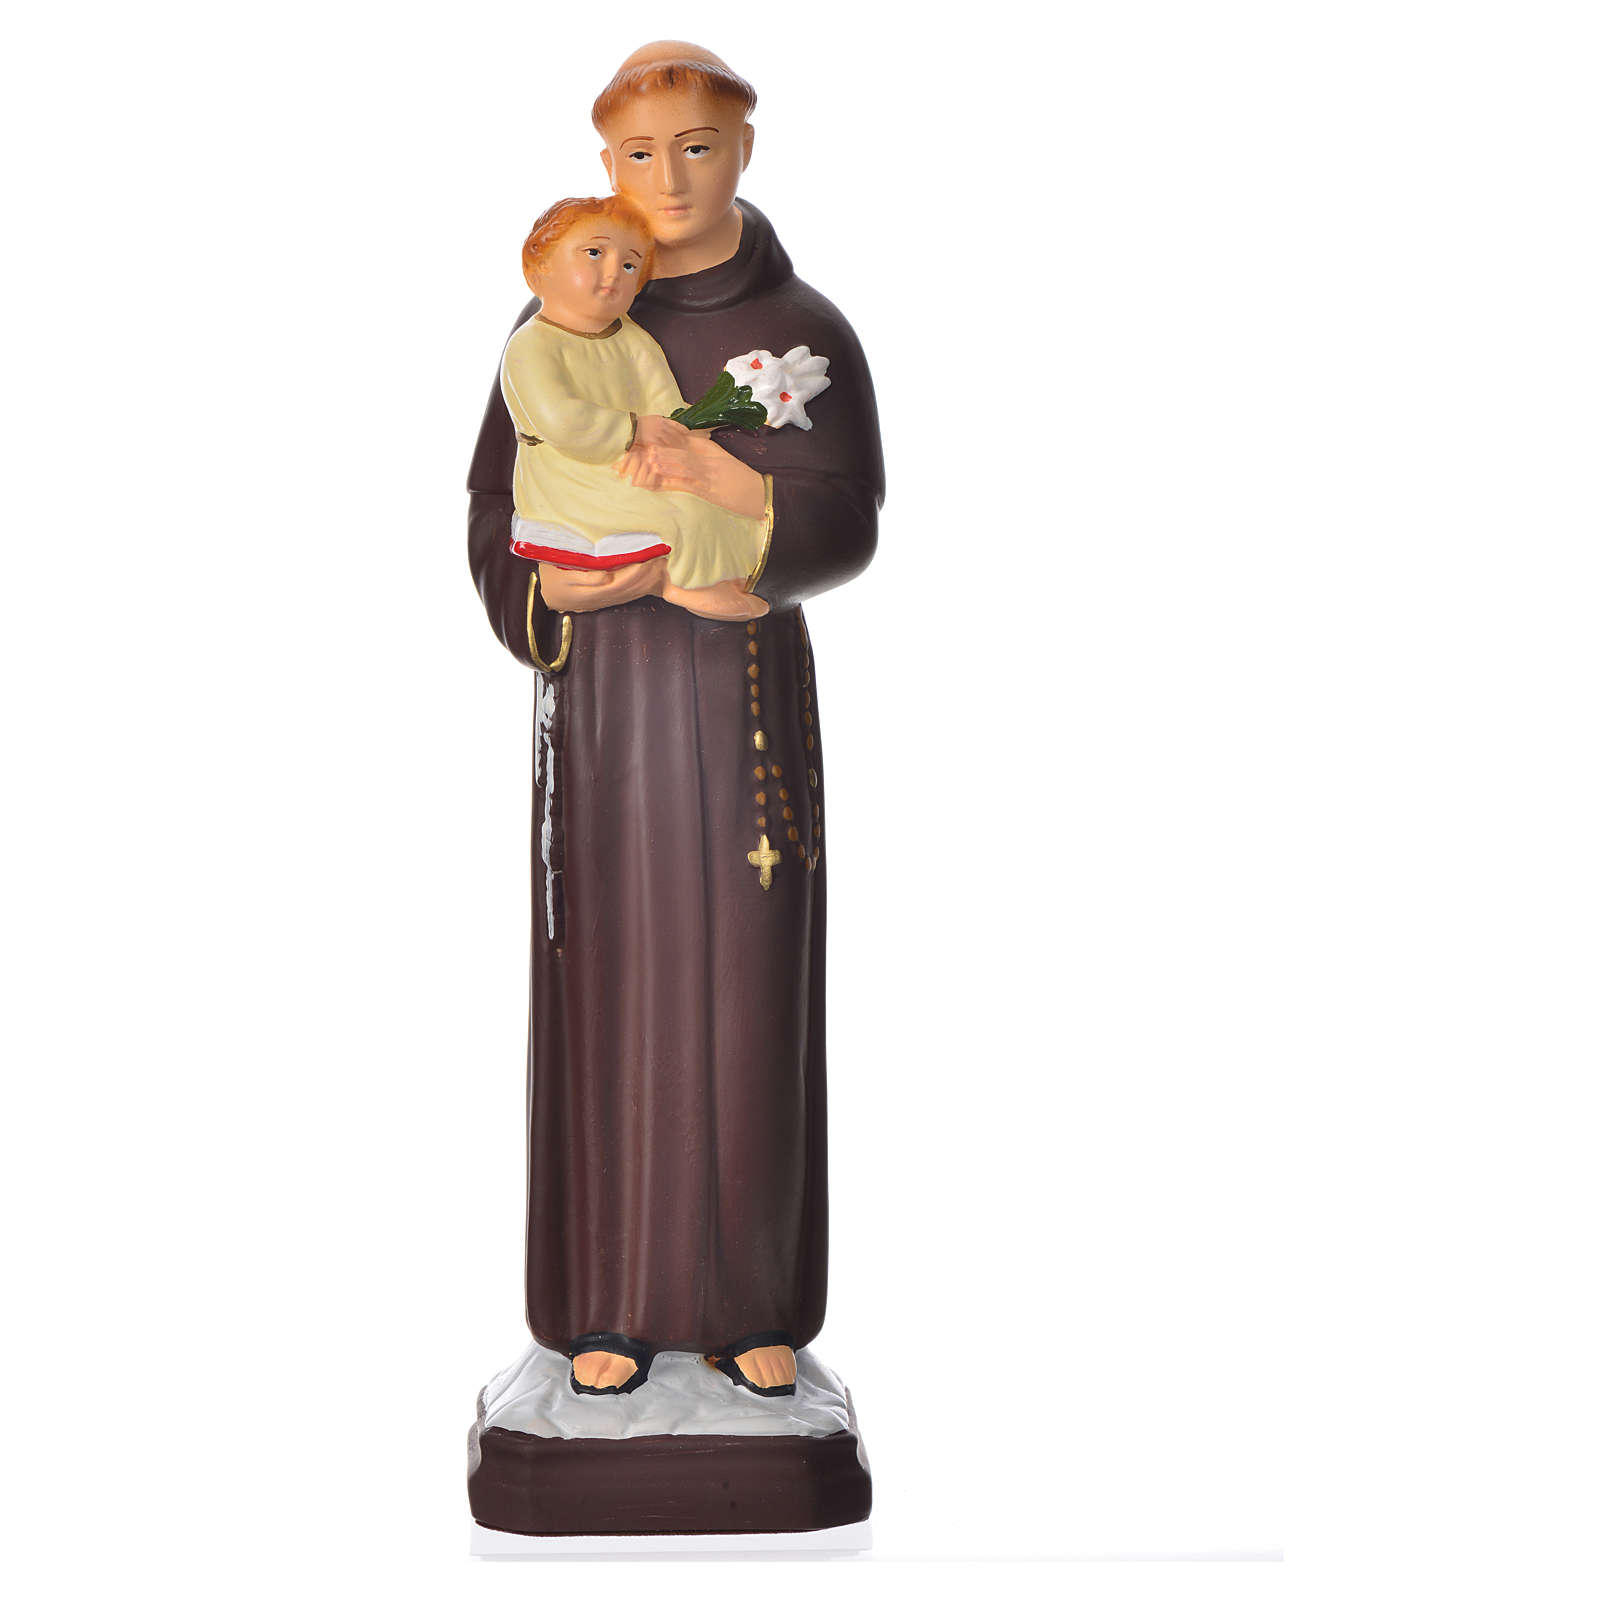 Saint Anthony of Padua 30cm, unbreakable material 4